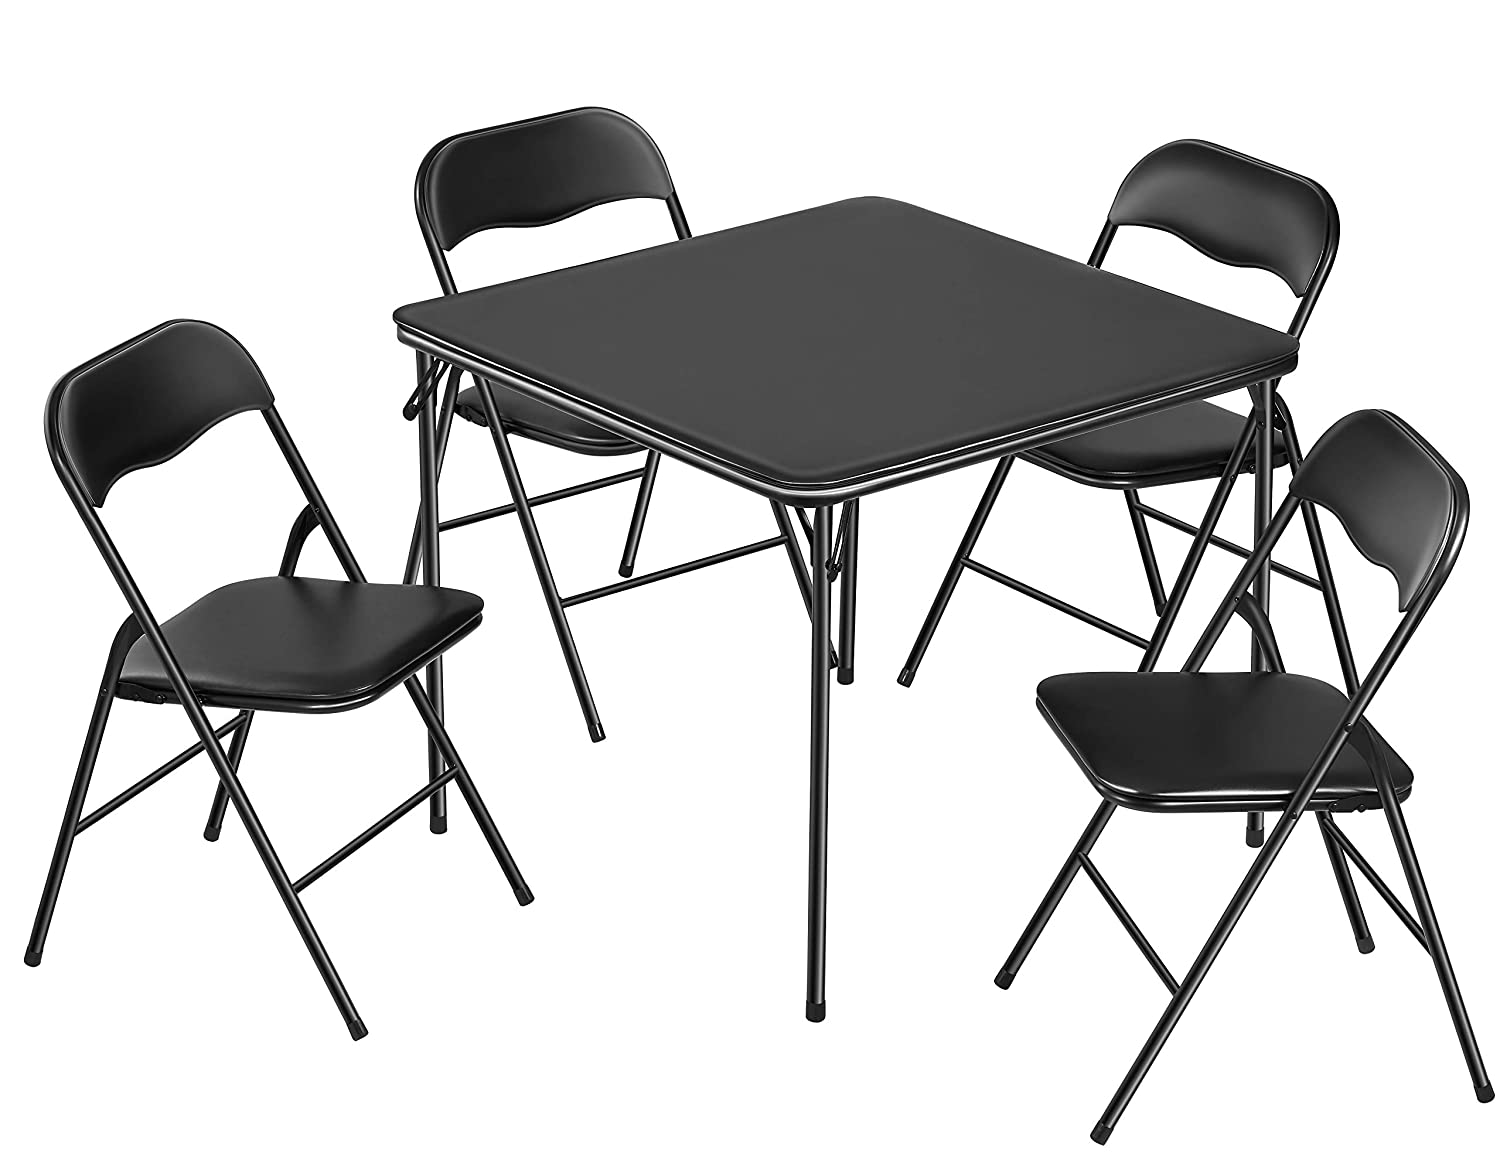 Kealive Folding Table and Chairs 5 Piece Padded Seat, Square Card Table and Chairs Set with Locking Legs, Multipurpose Dining Game Table for Puzzles Portable and Easy for Compact Storage, Black